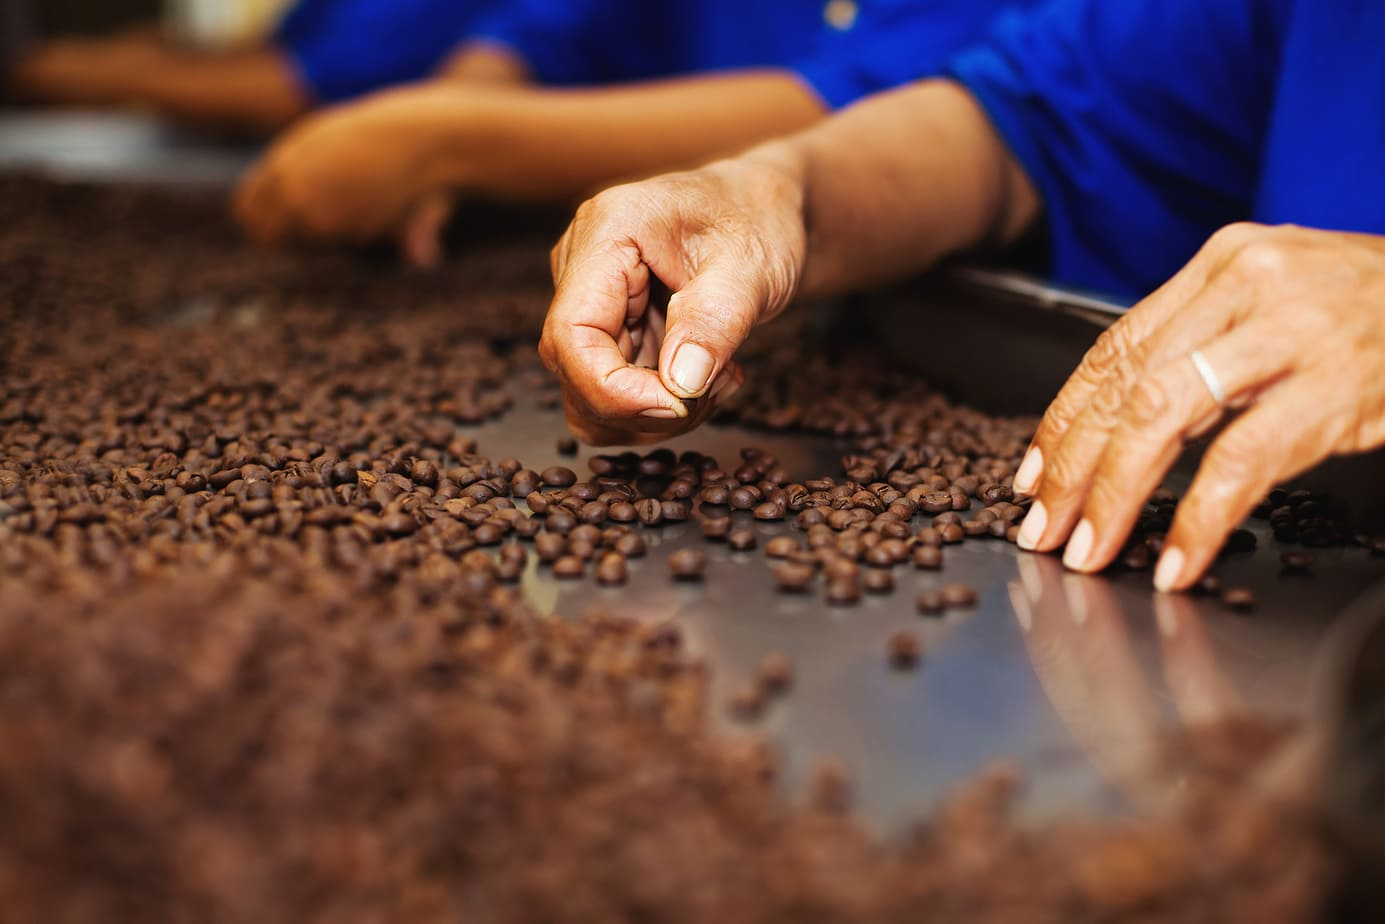 Geisha Coffee: The Symbol of Perfection